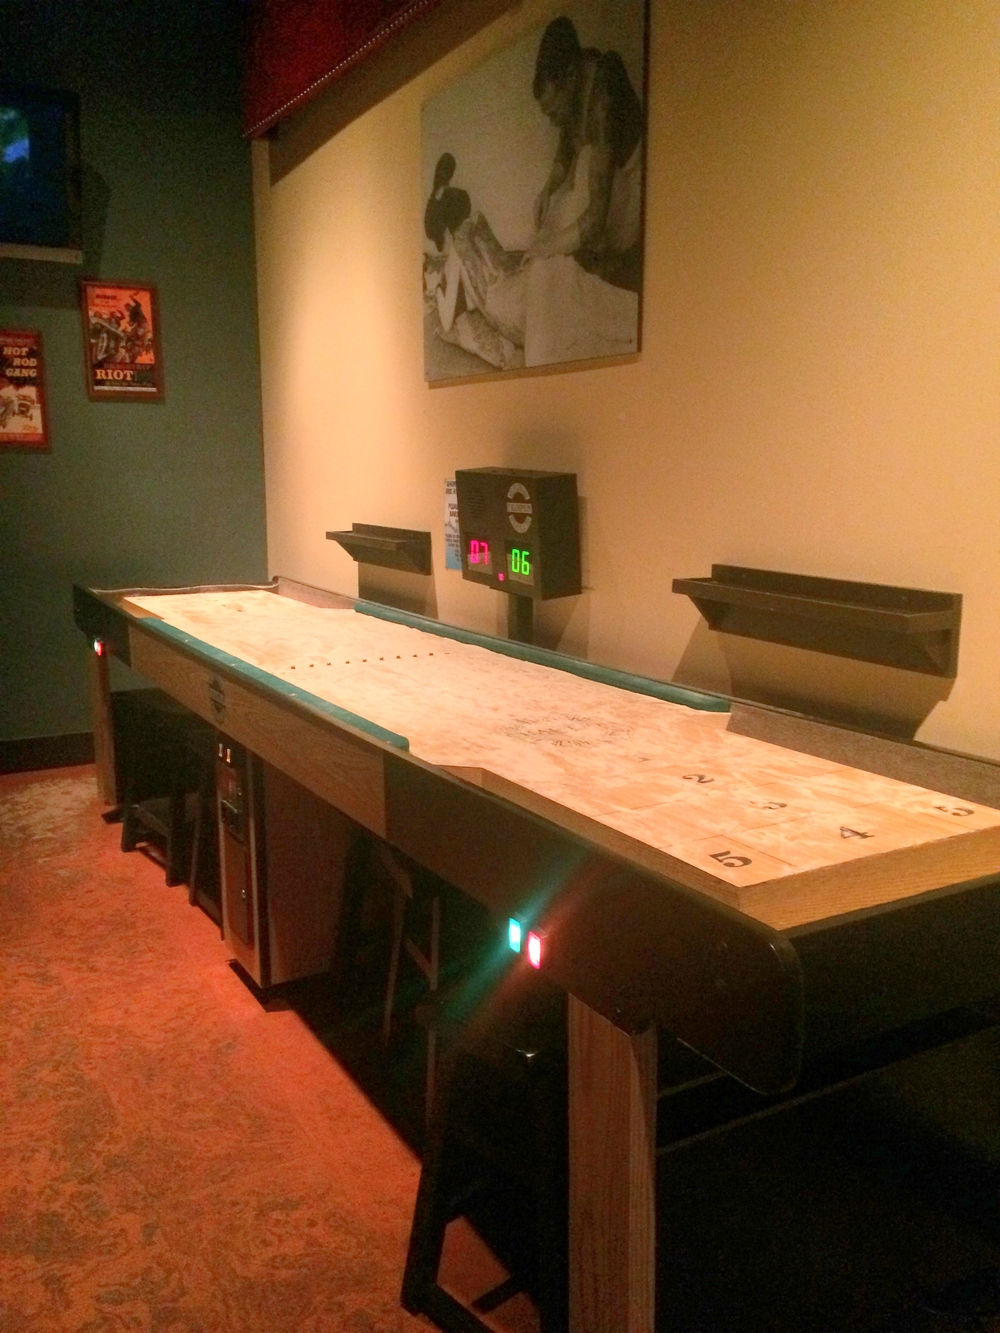 You can play shuffleboard!                                                                                                                                                                                              Photo by Lynne Everson